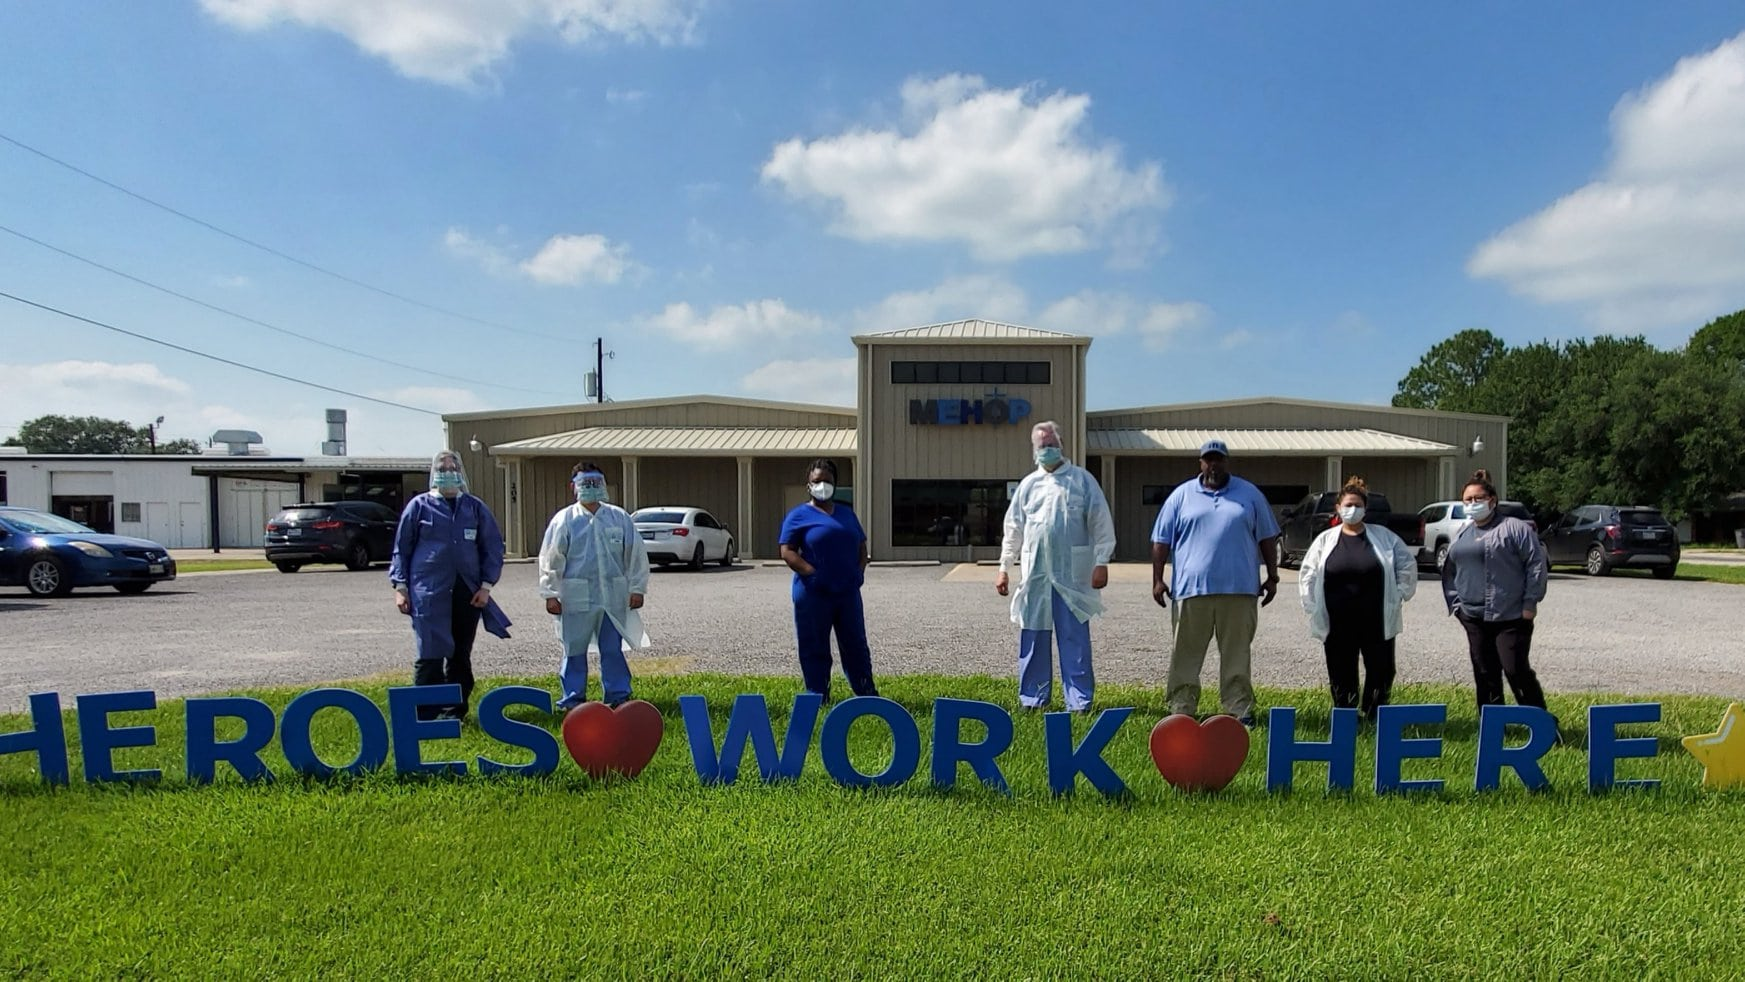 Matagorda health workers in front of a COVID Workers sign